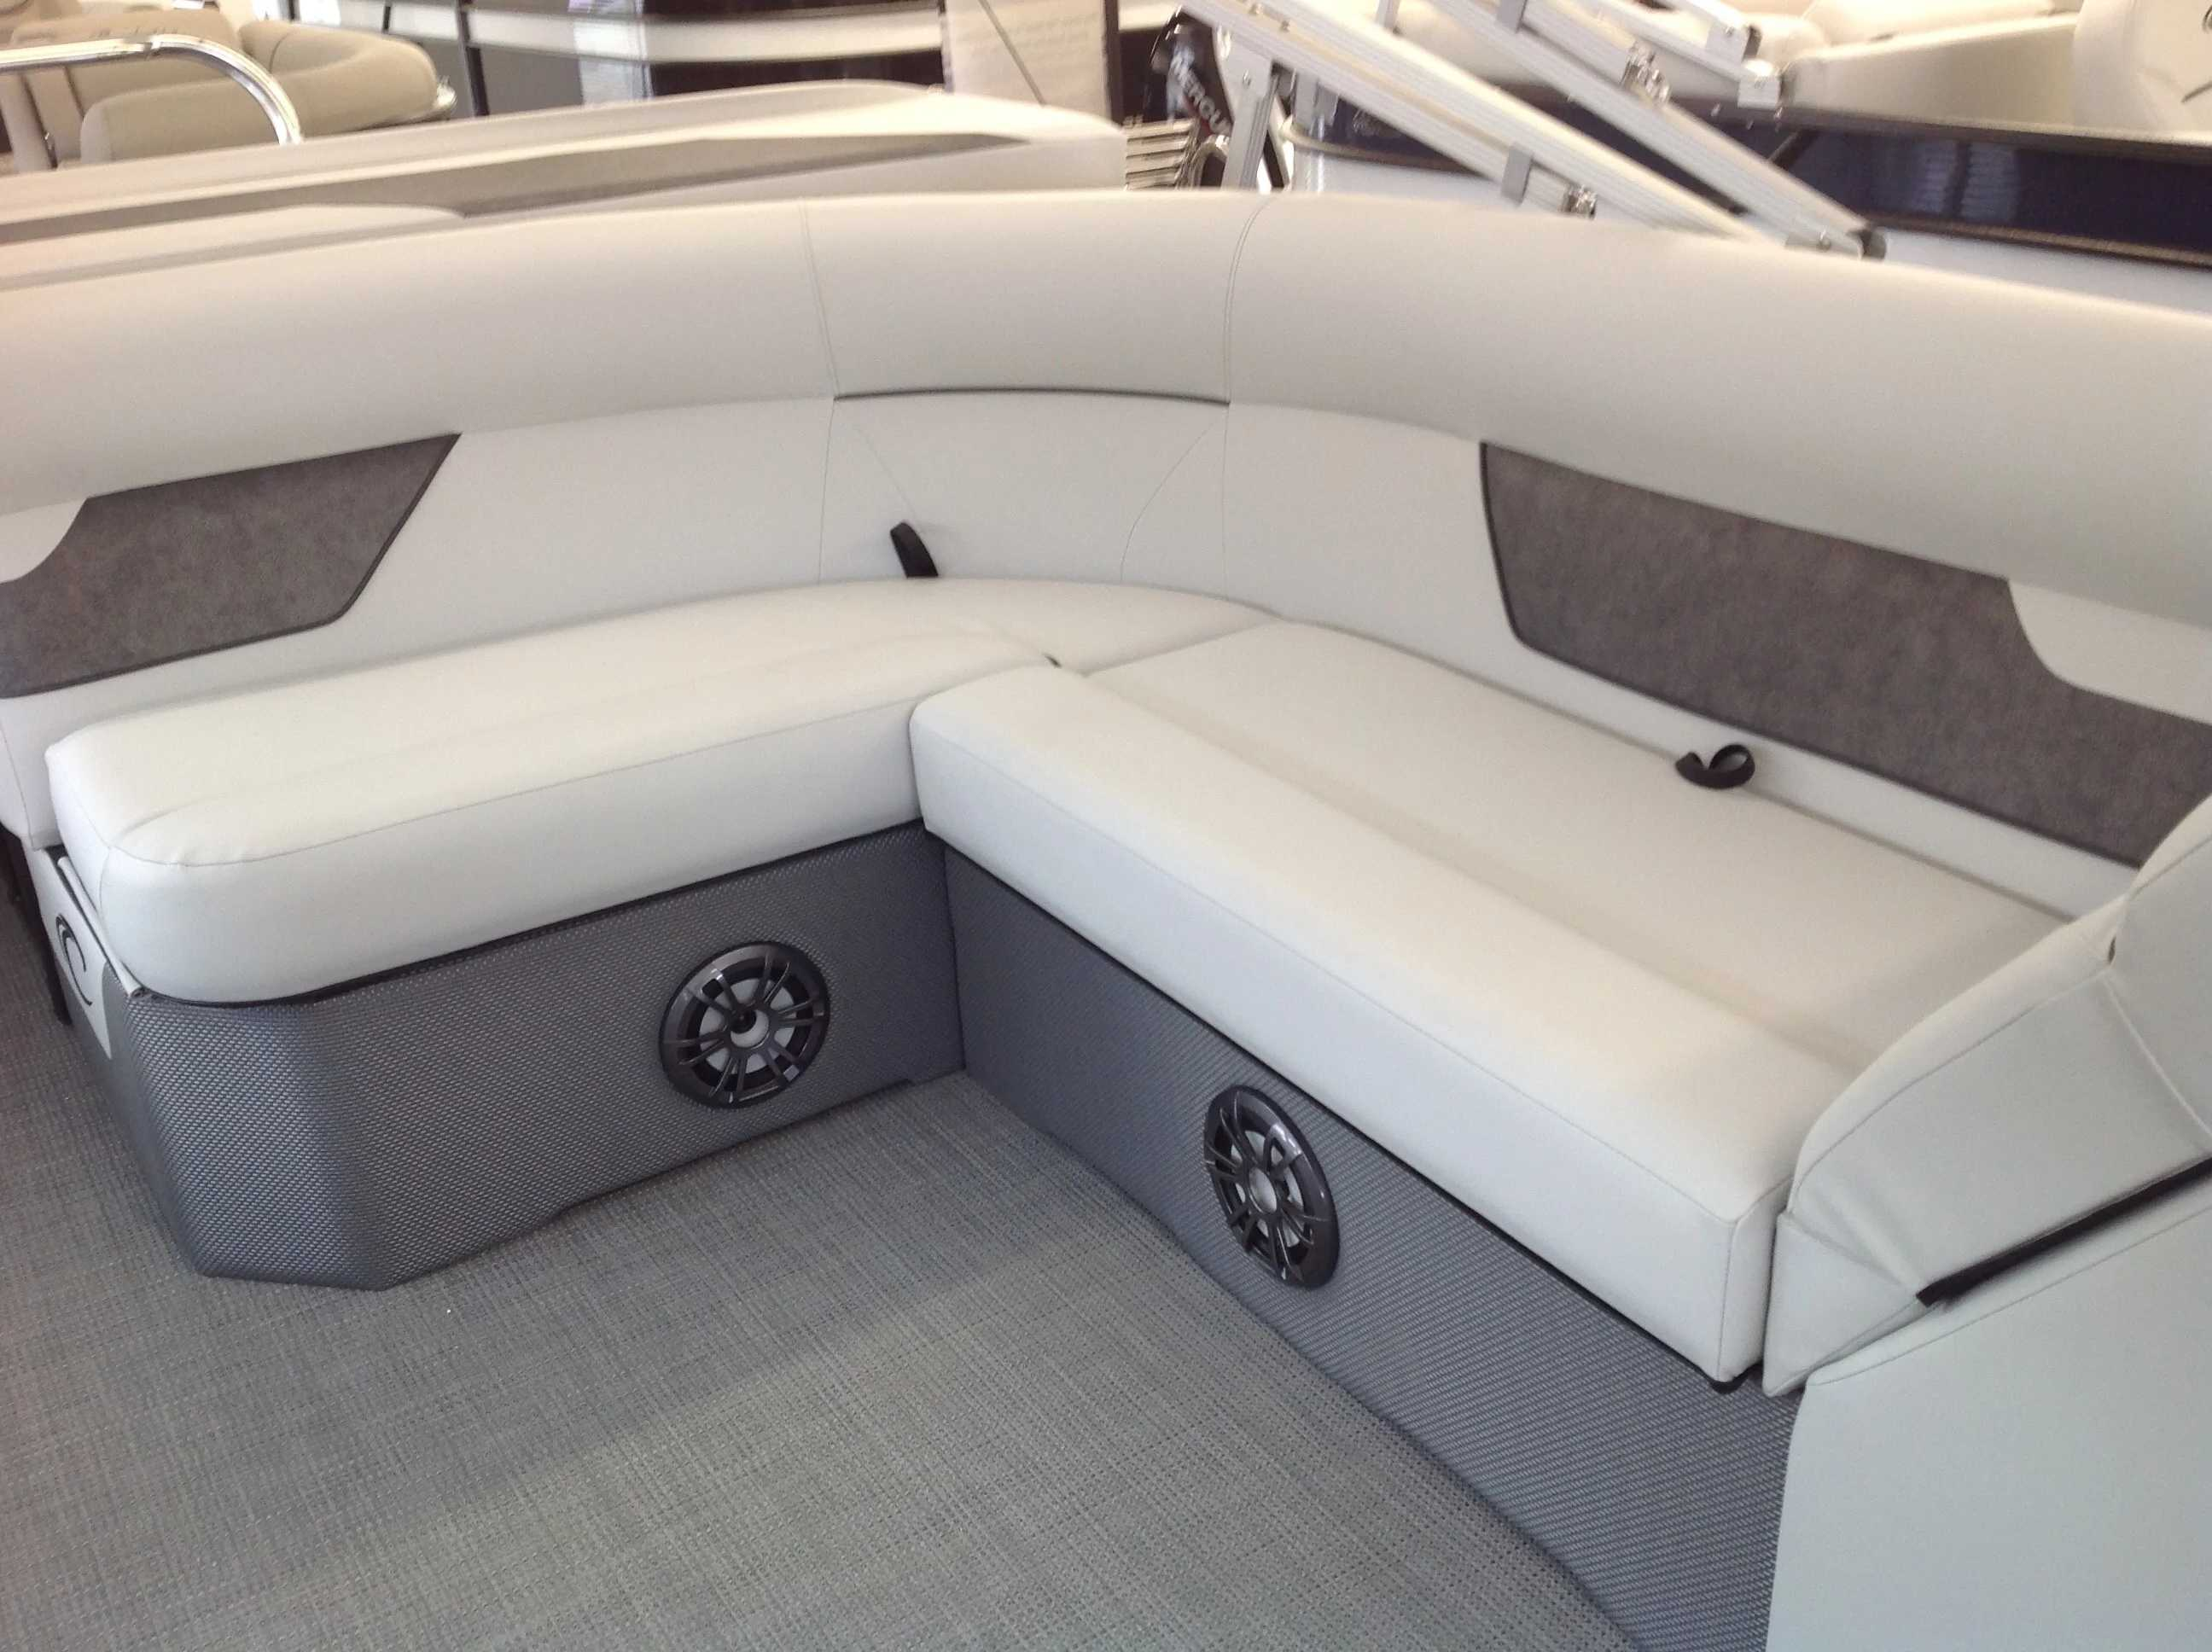 2021 Crest boat for sale, model of the boat is Cl Lx 200l & Image # 6 of 9